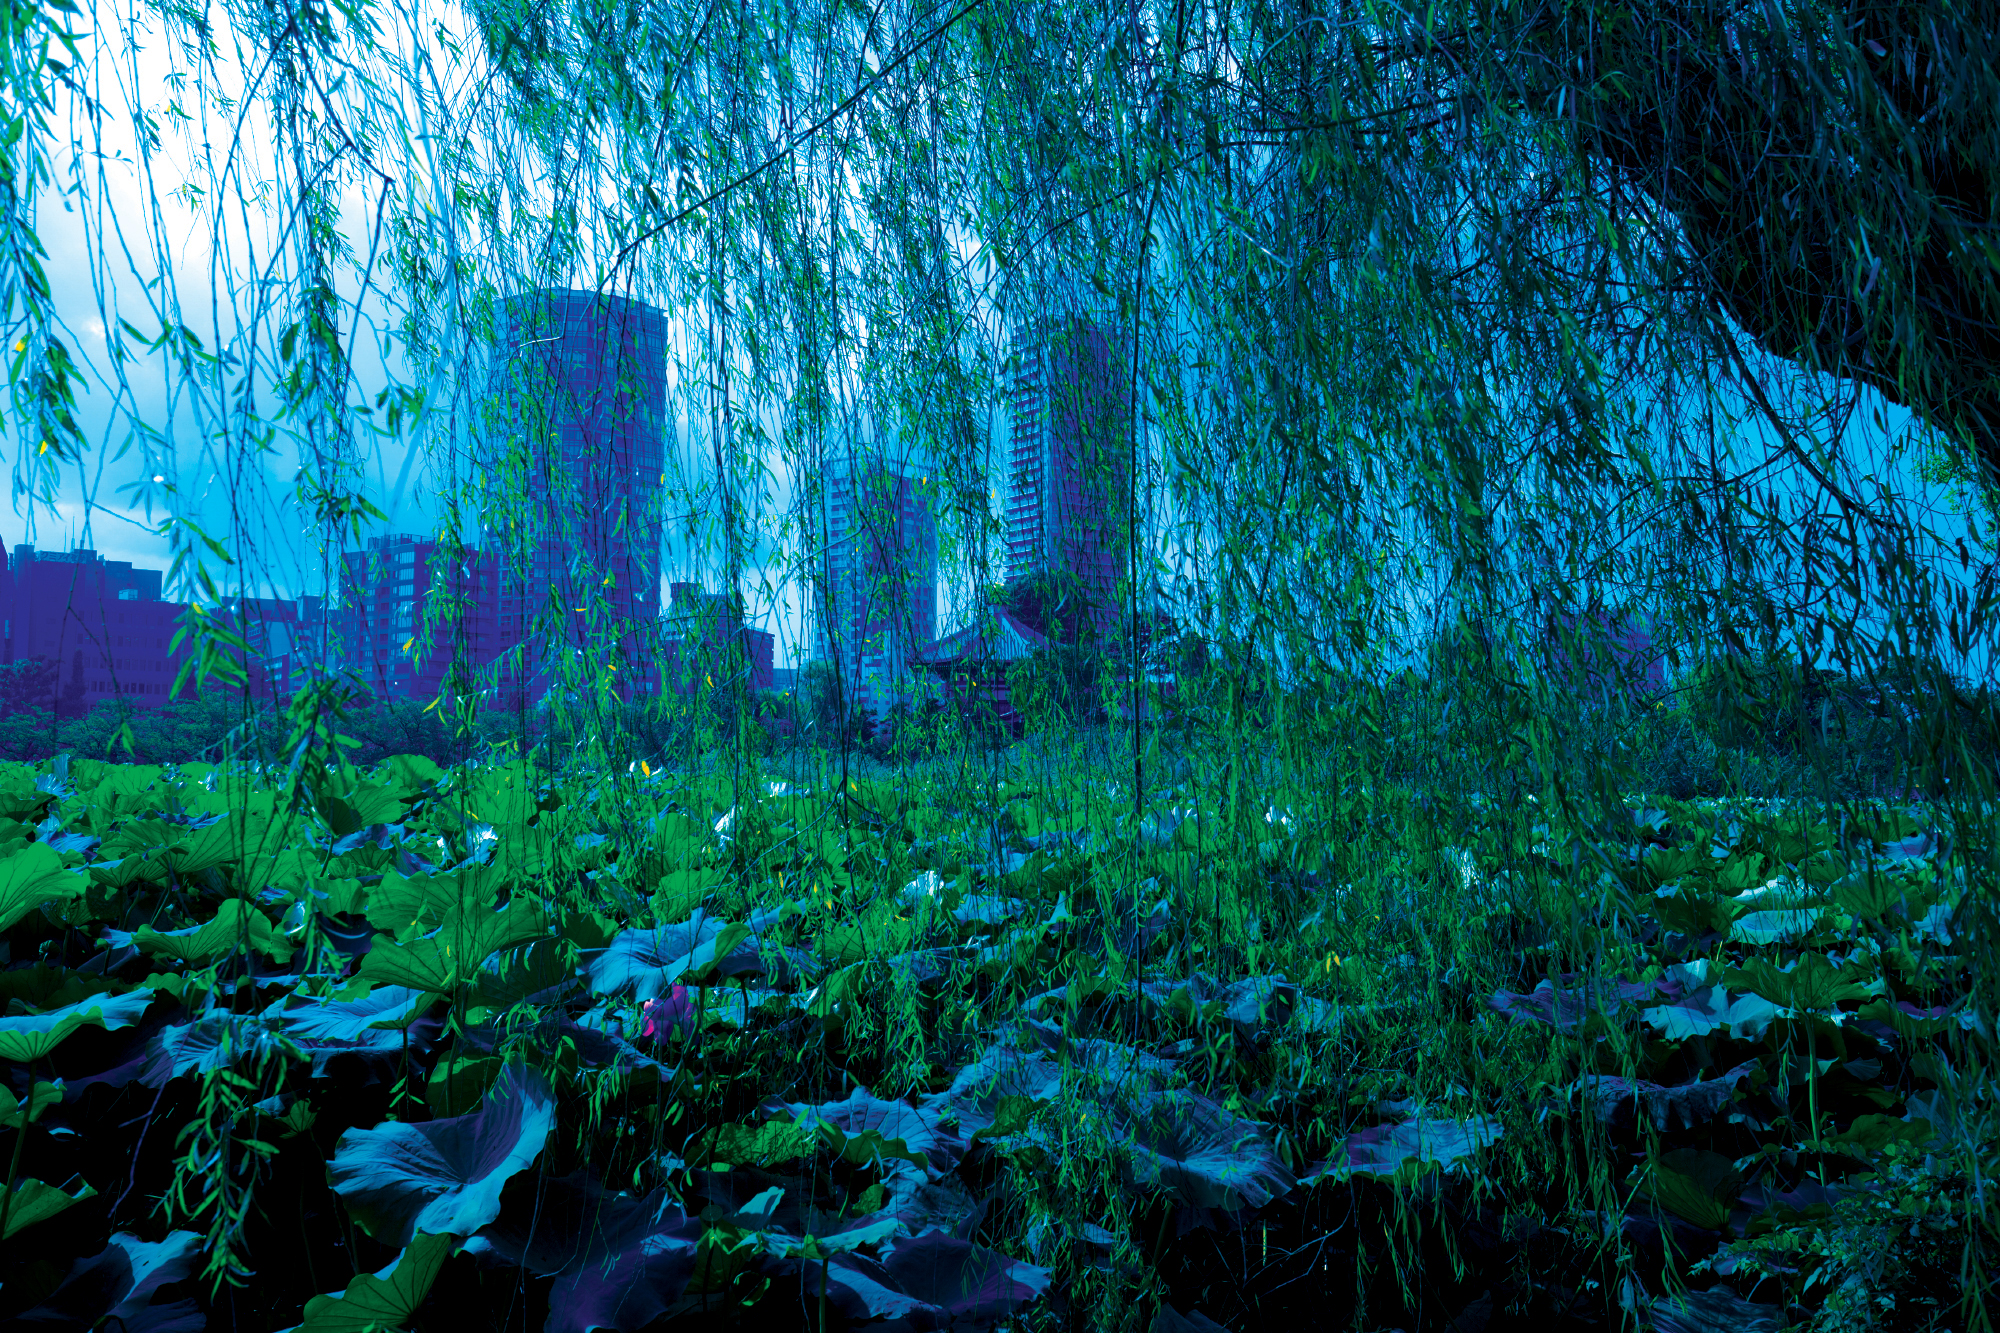 A giant Weeping Willow tree with a view of Tokyo, Japan in the background.